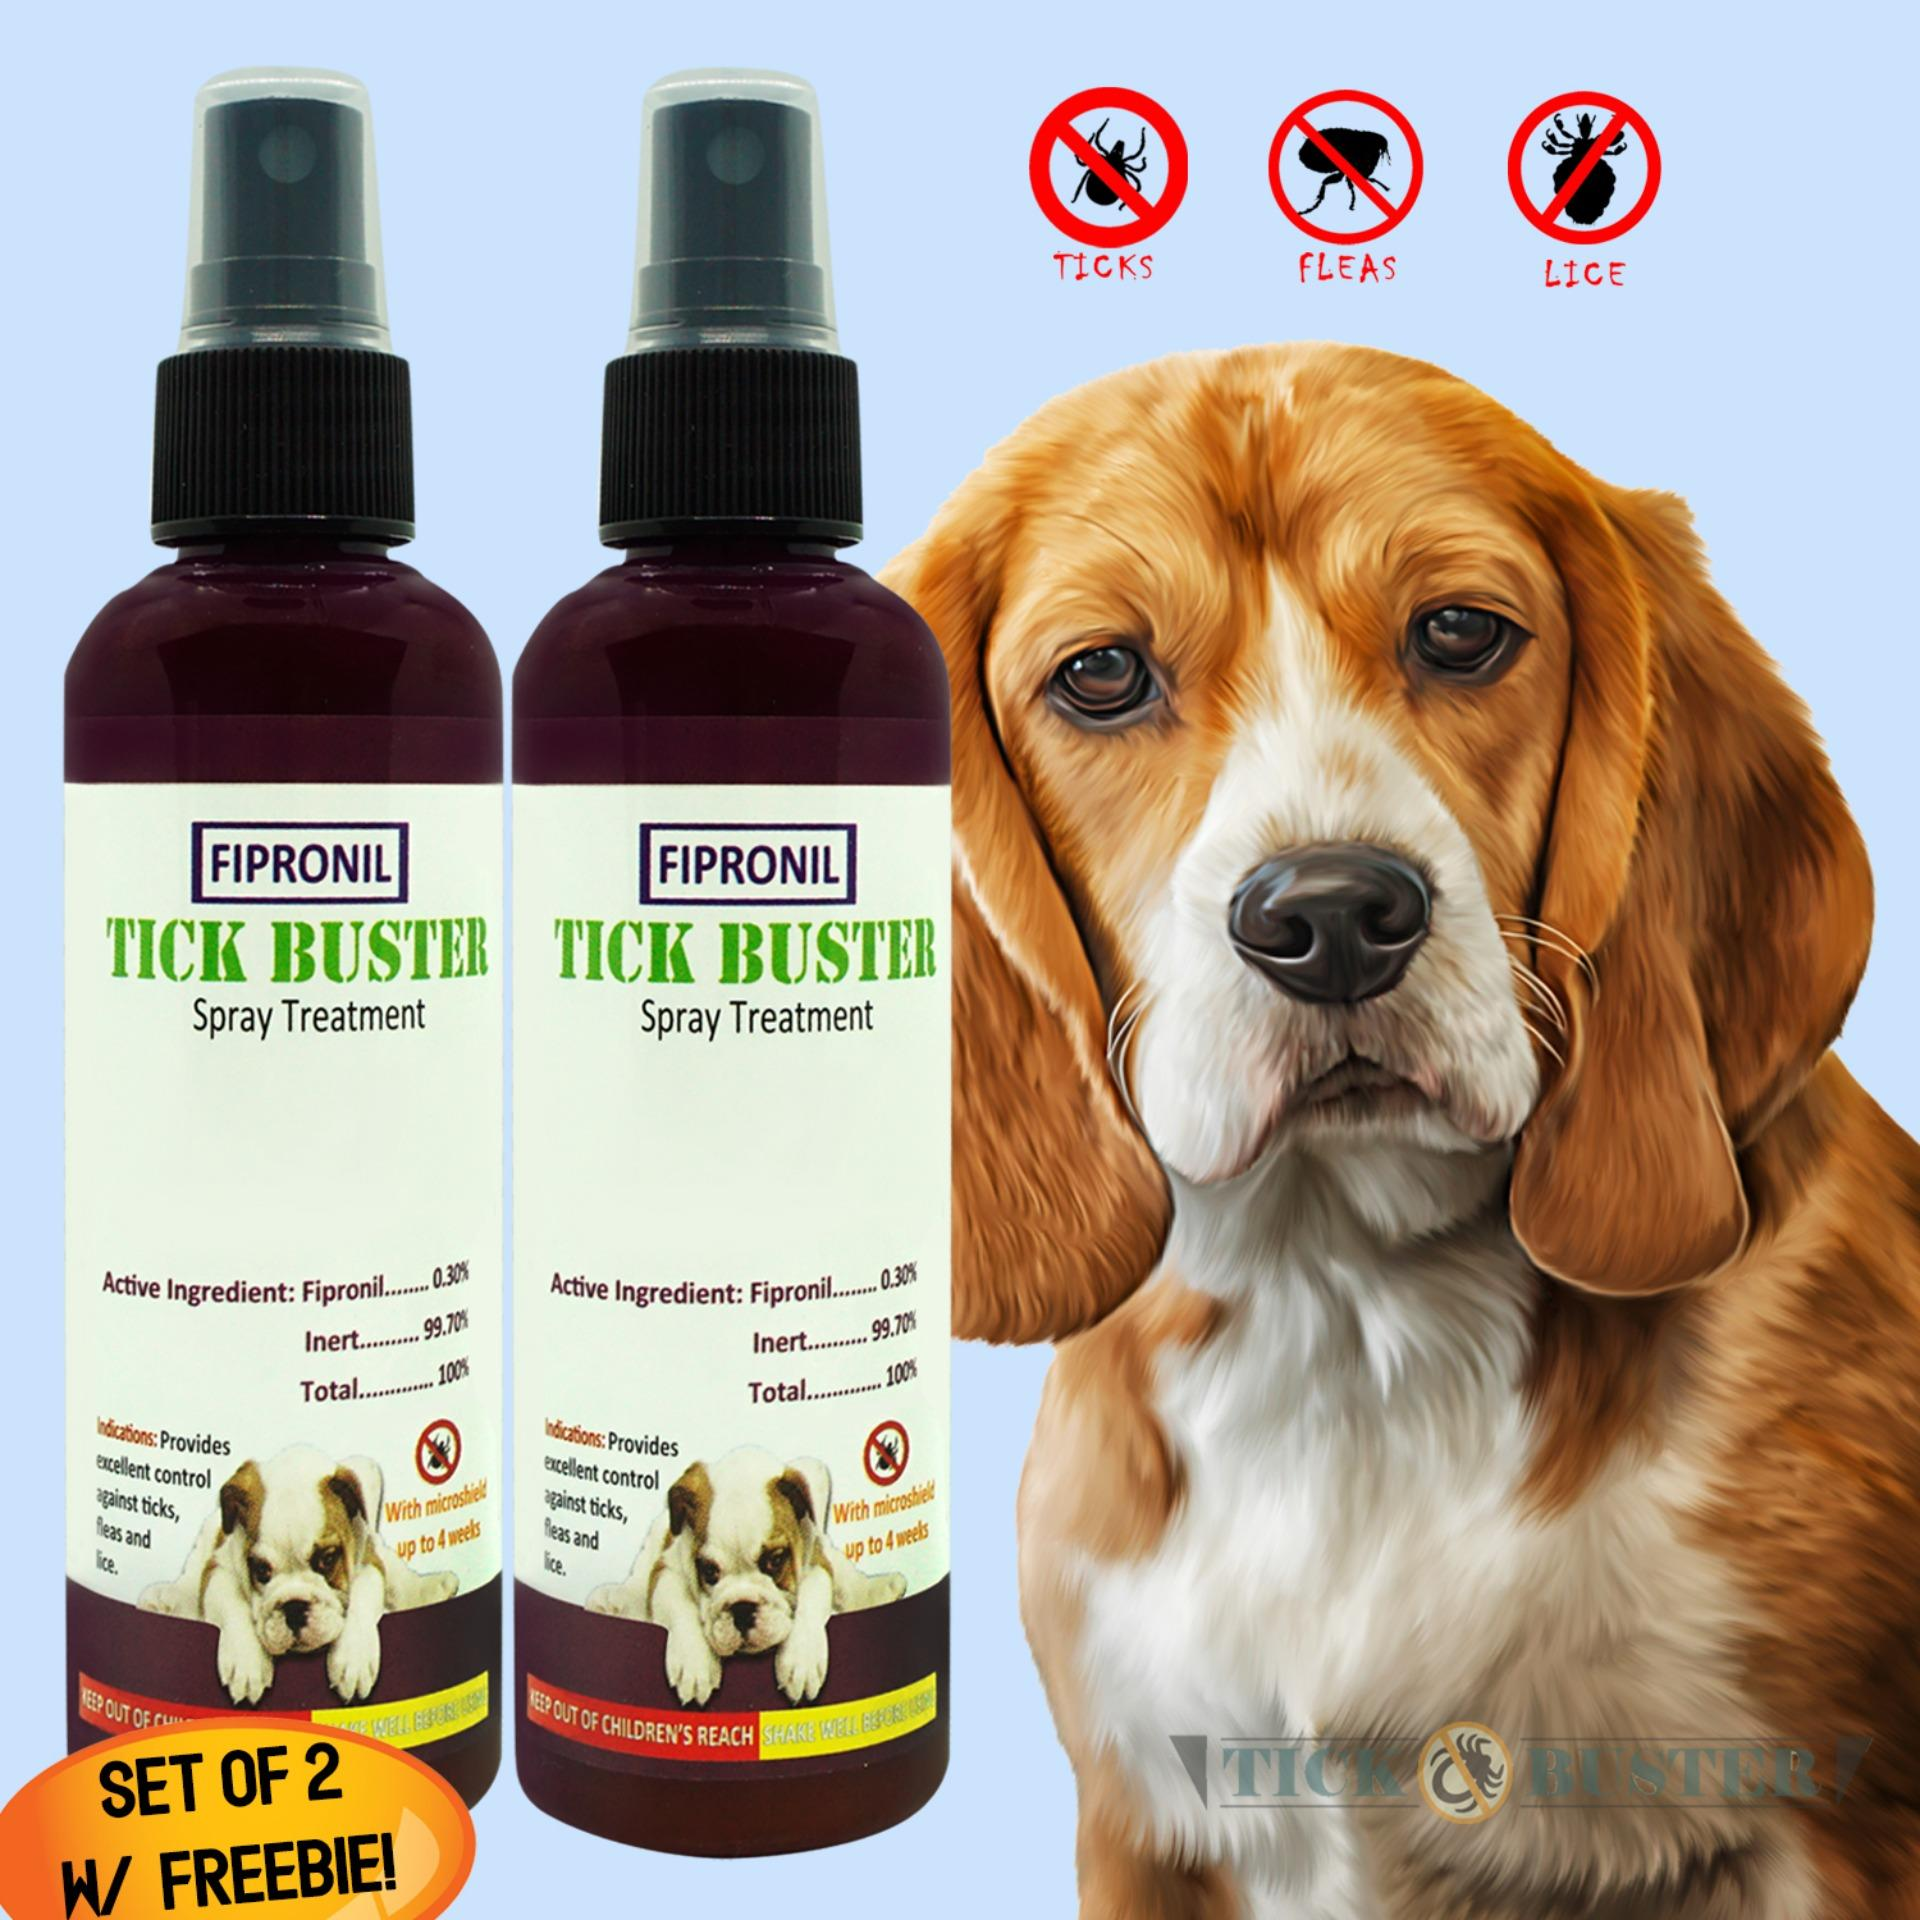 Tick Buster (anti Garapata, Pulgas, Kuto) Fipronil Pet Spray Treatment 100ml Set Of 2 Ticks Buster With Free Hugz Anti-Parasitic Deodorizing Powder 100g Give Away By Lkj.